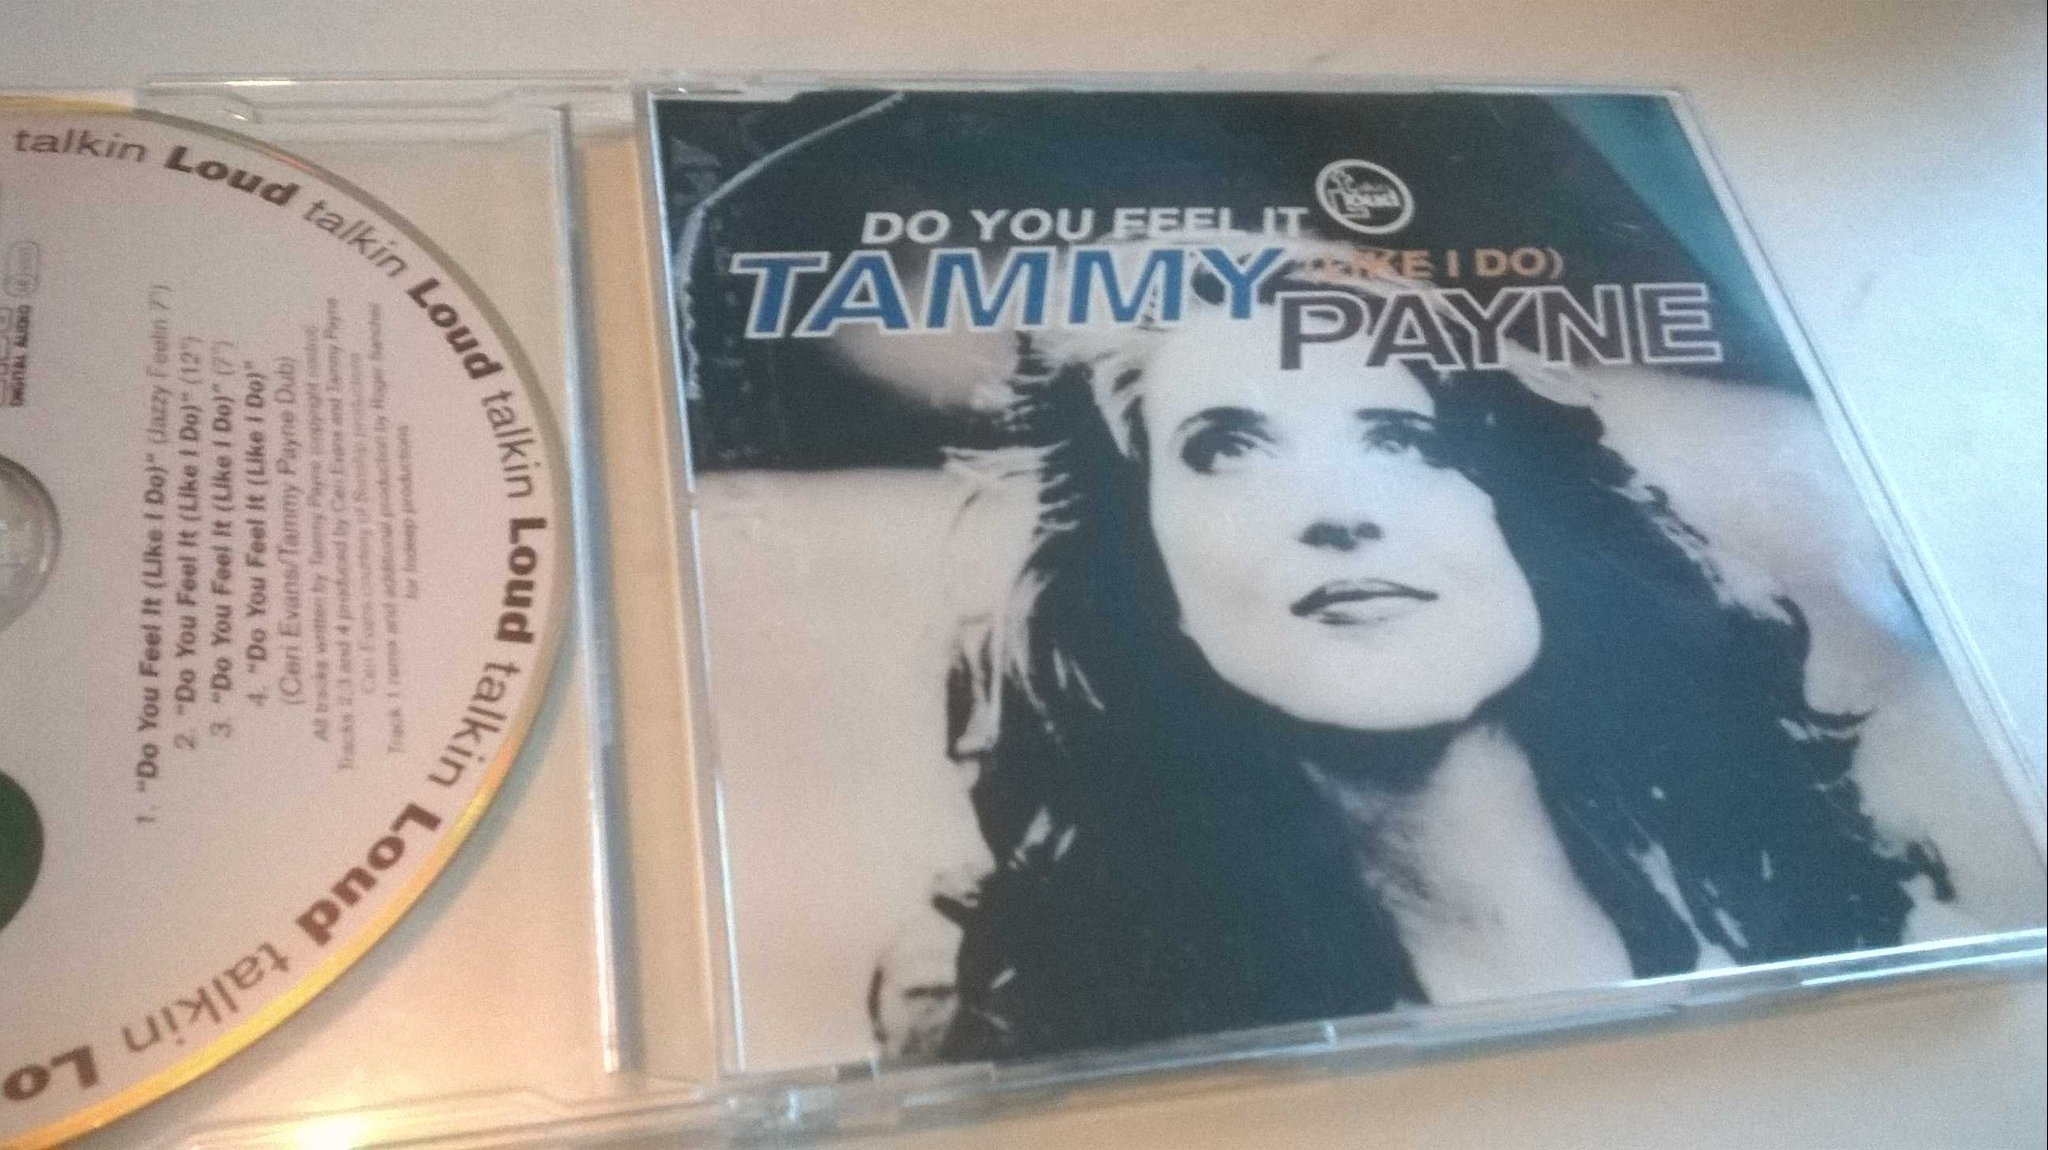 Tammy Payne - Do you feel it (like I do), CD, single